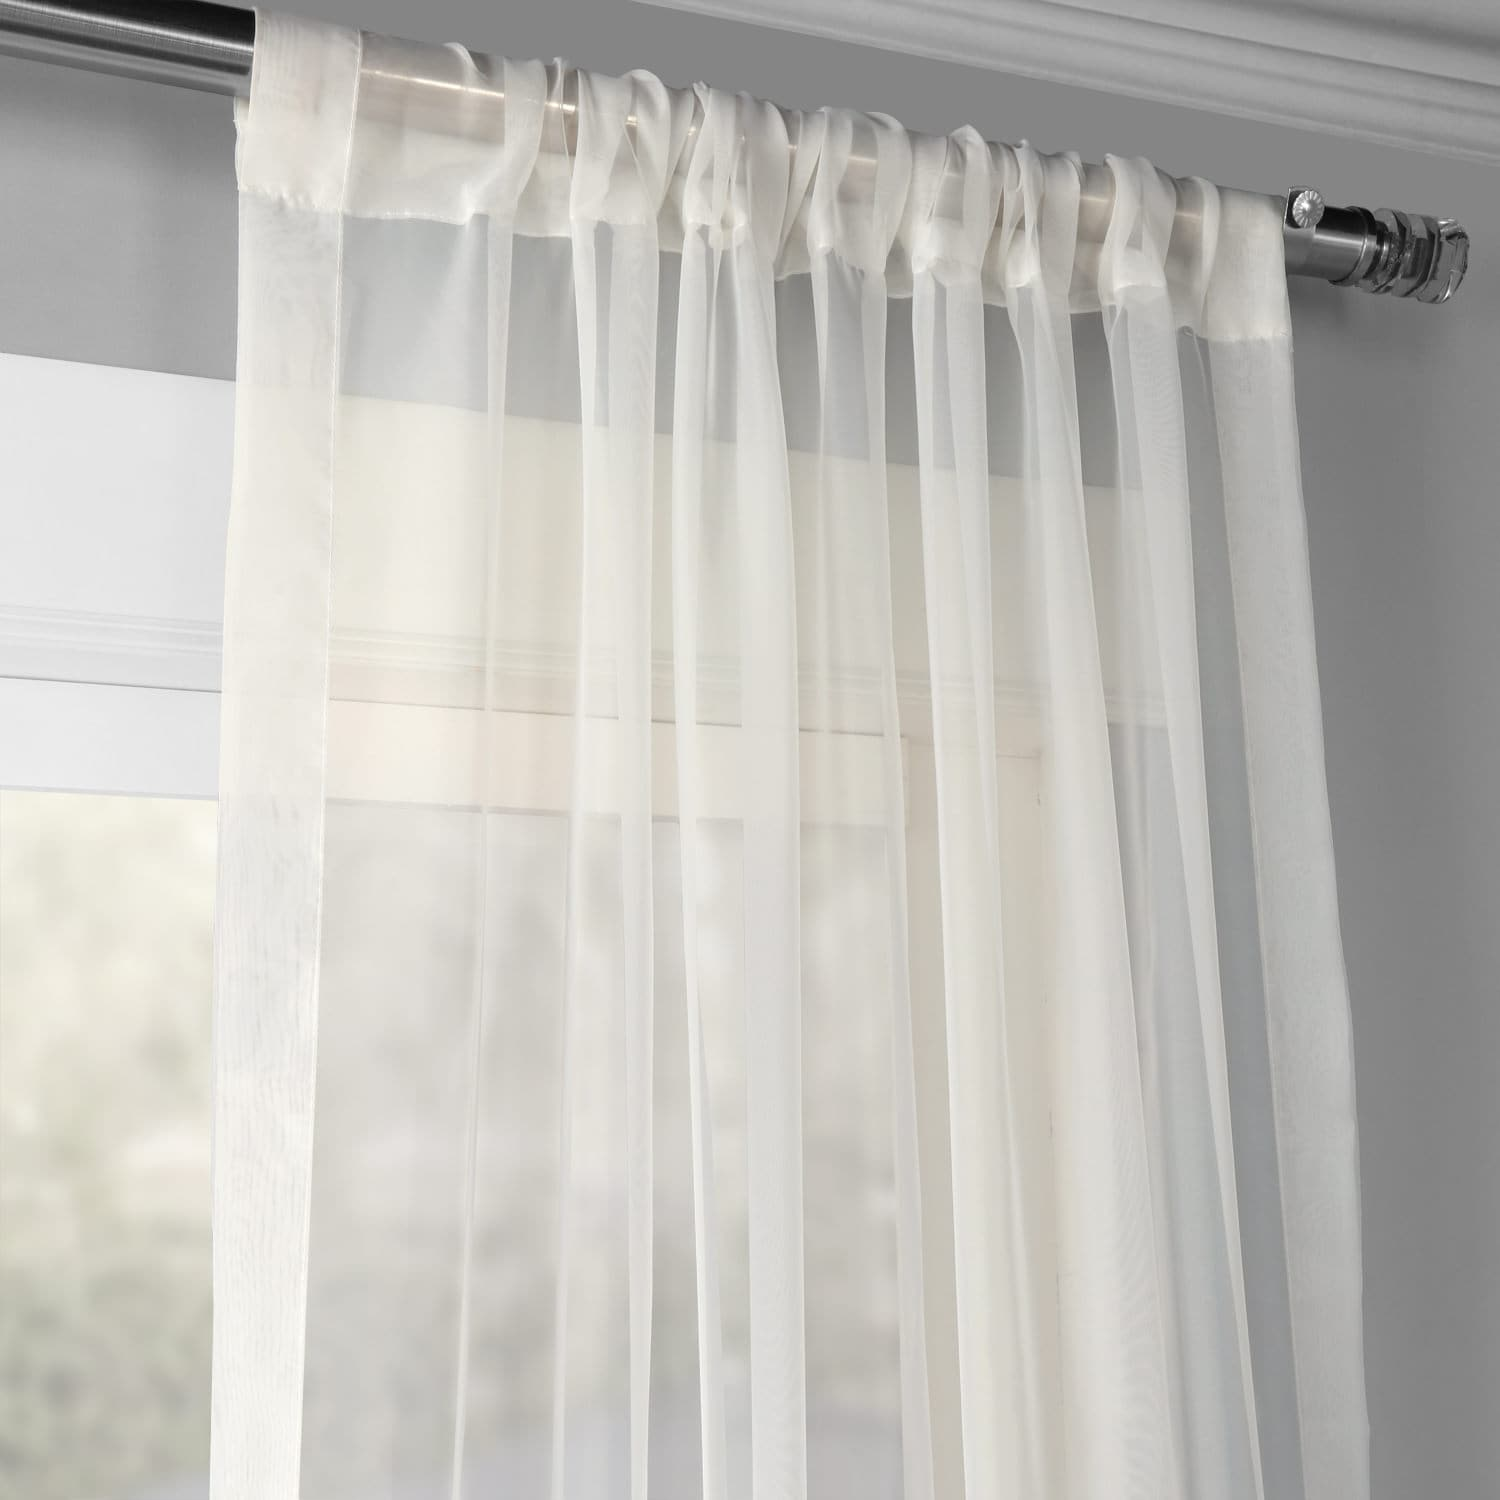 Solid Off White Voile Poly Sheer Curtain Pair (2 Panels)